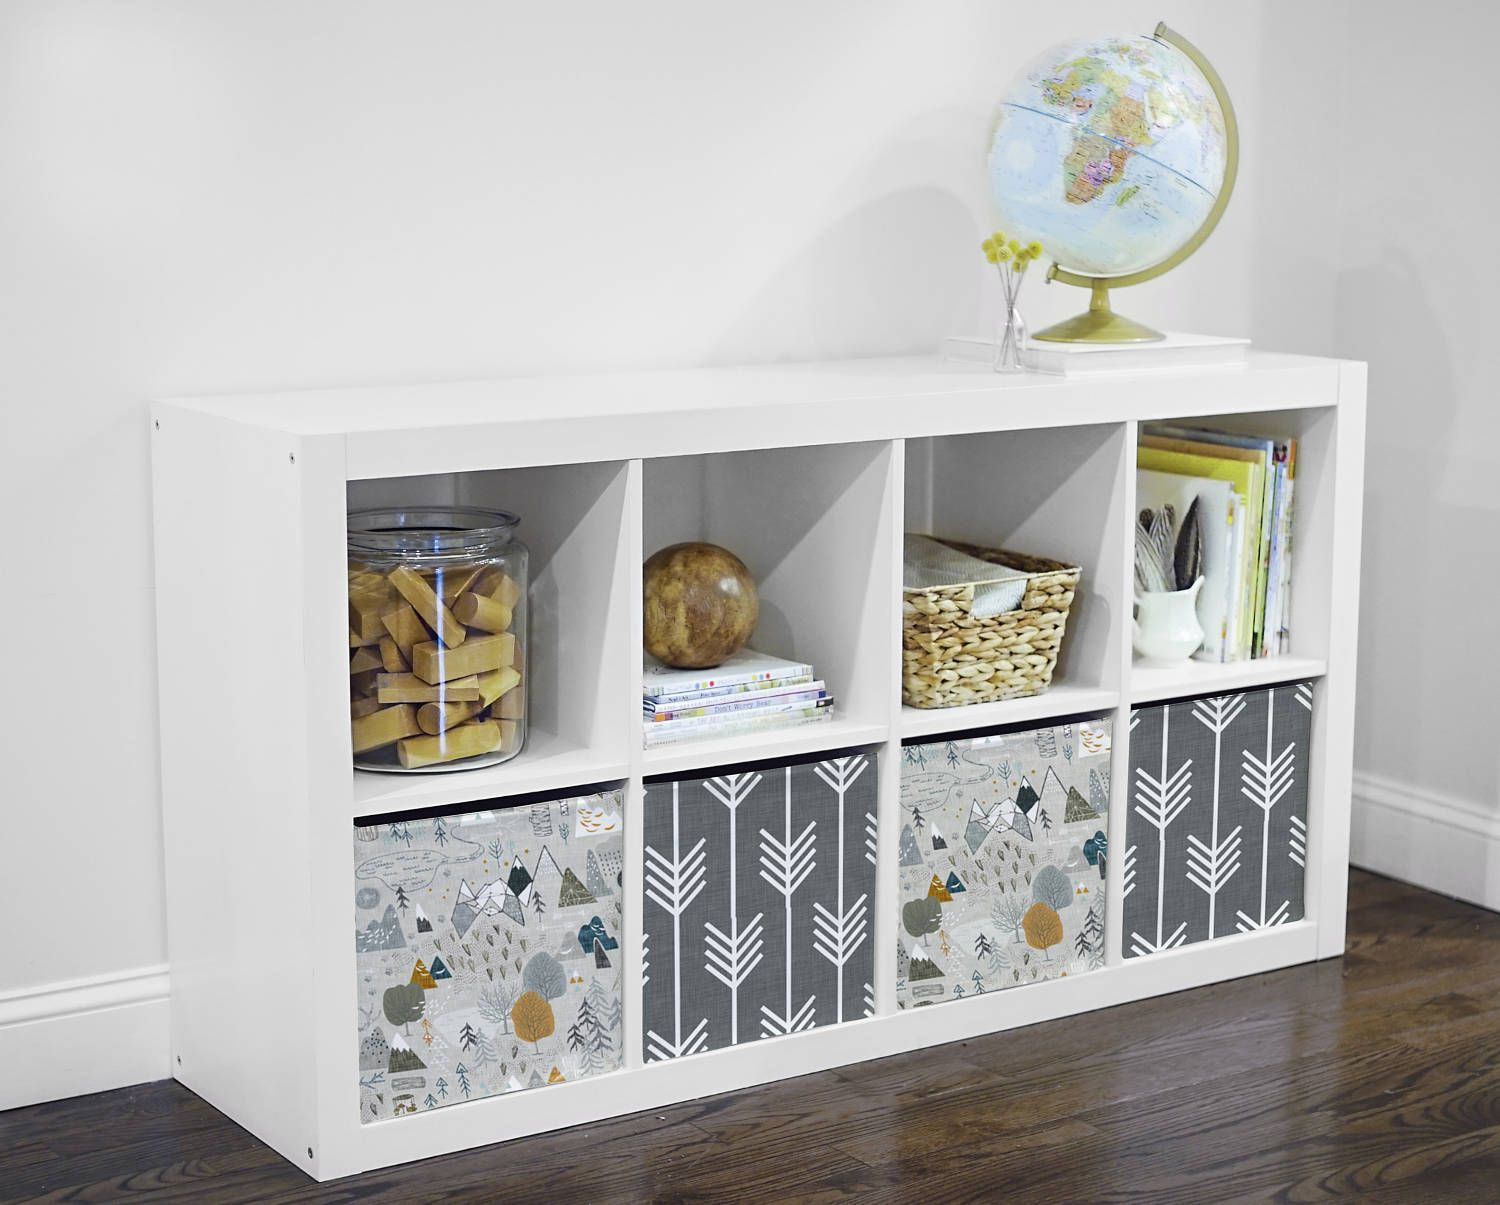 Personalize Your Ikea Storage Unit With Our Fun Fabric Covers Perfect For Nurseries Kids Rooms Playrooms Or Living Room Kallax Ikea Ikea Storage Units Ikea